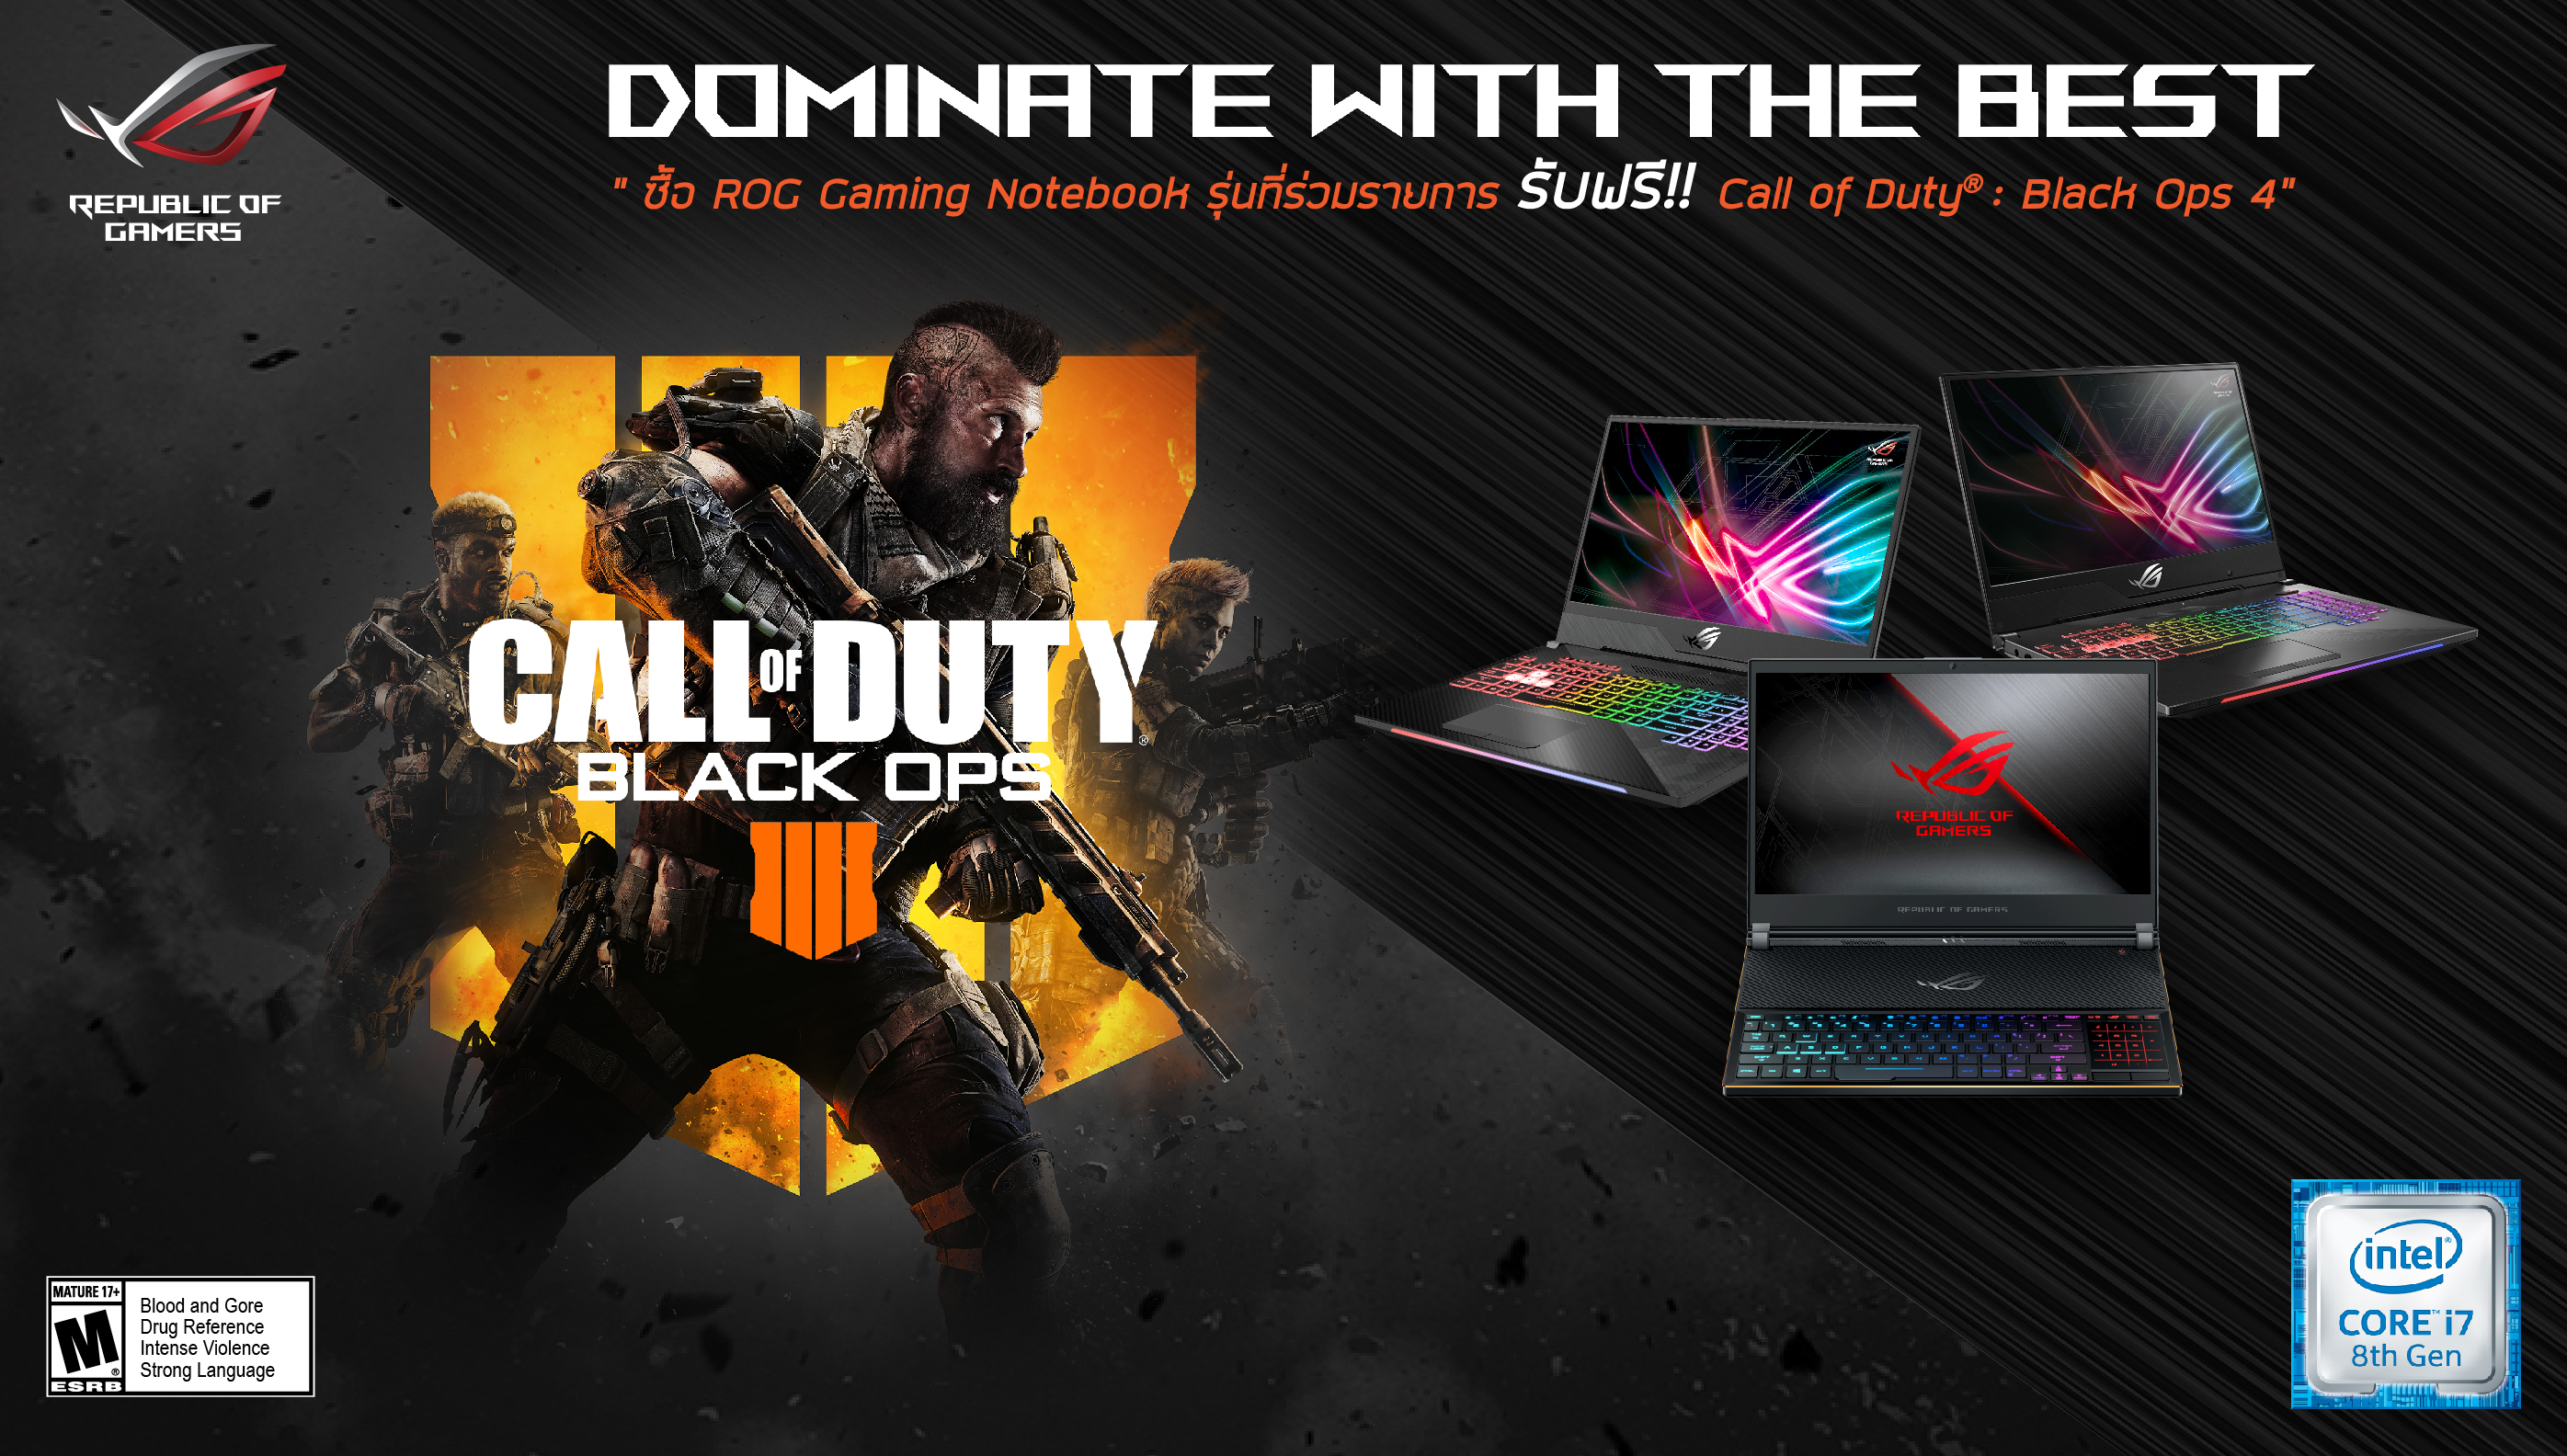 ROG Gaming Call Of Duty